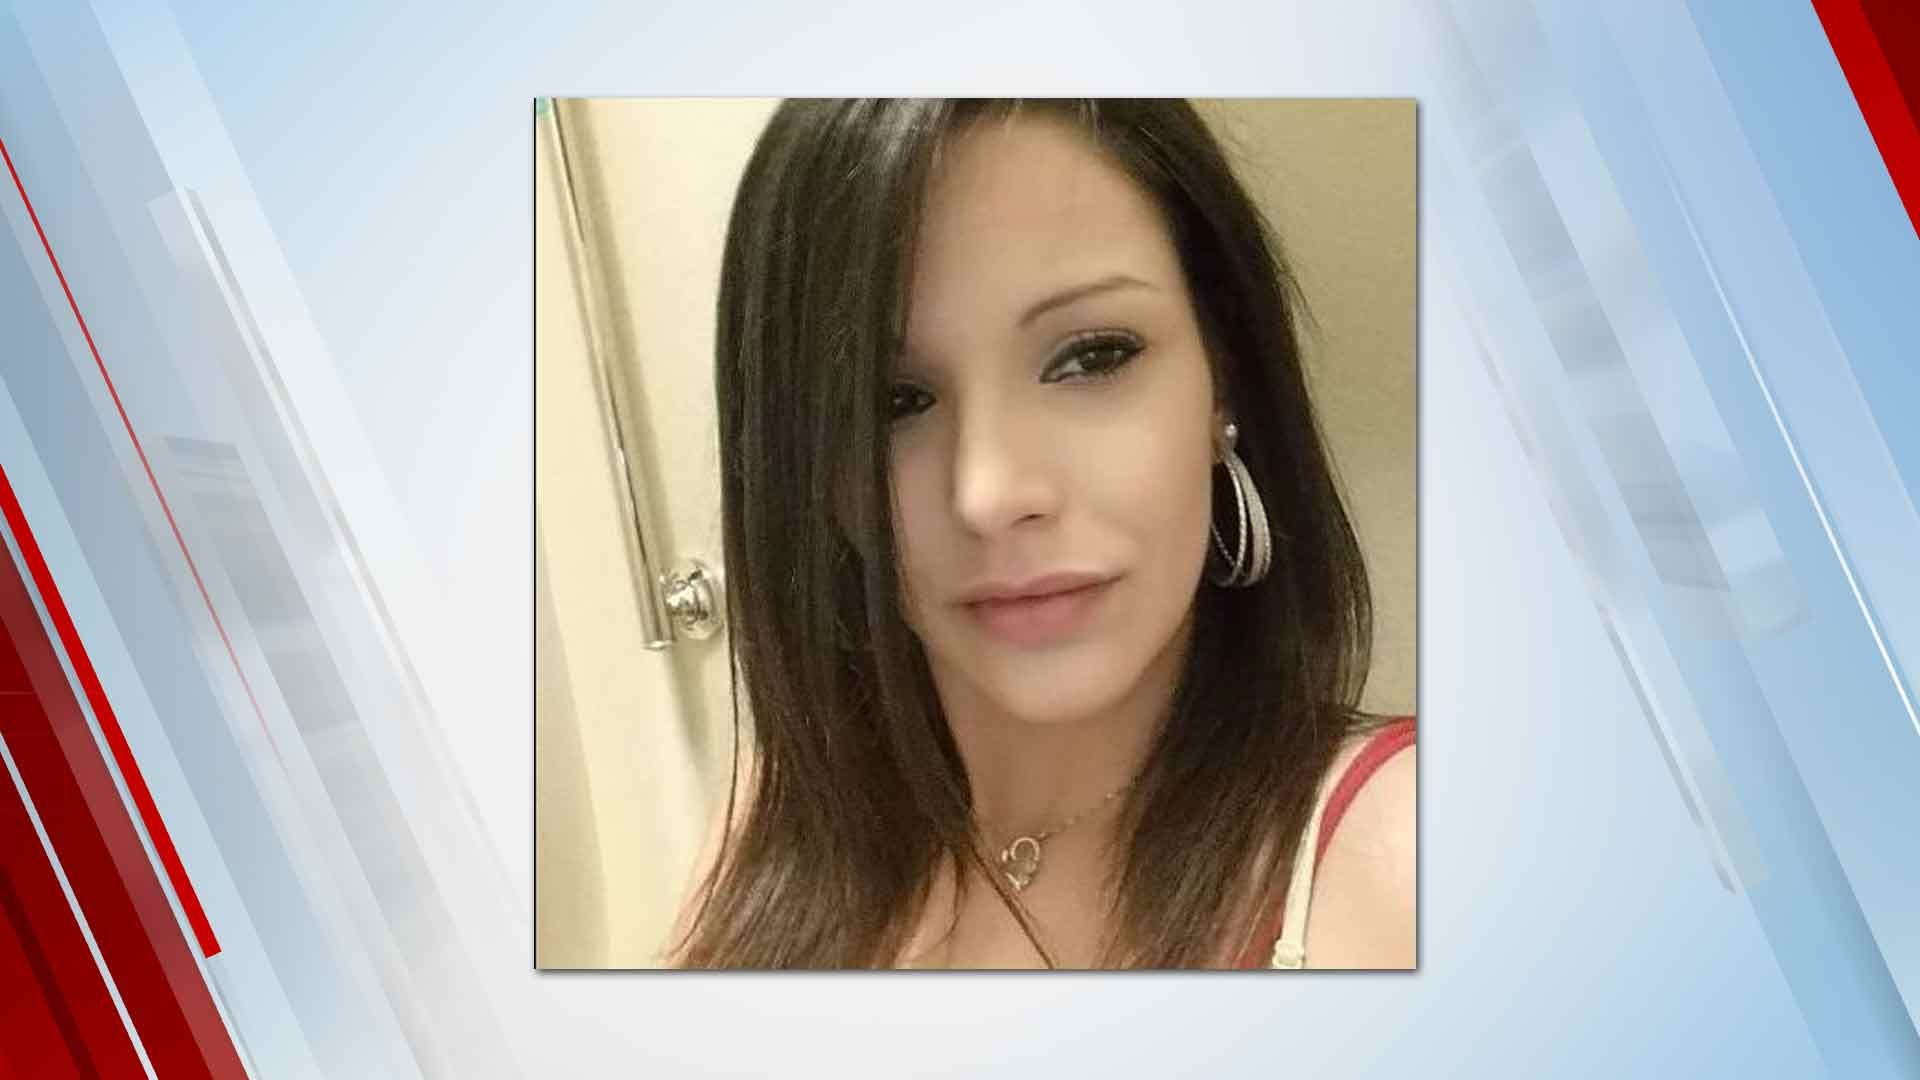 U.S. Marshals Most Wanted Suspect Sought In Meth Trafficking Case